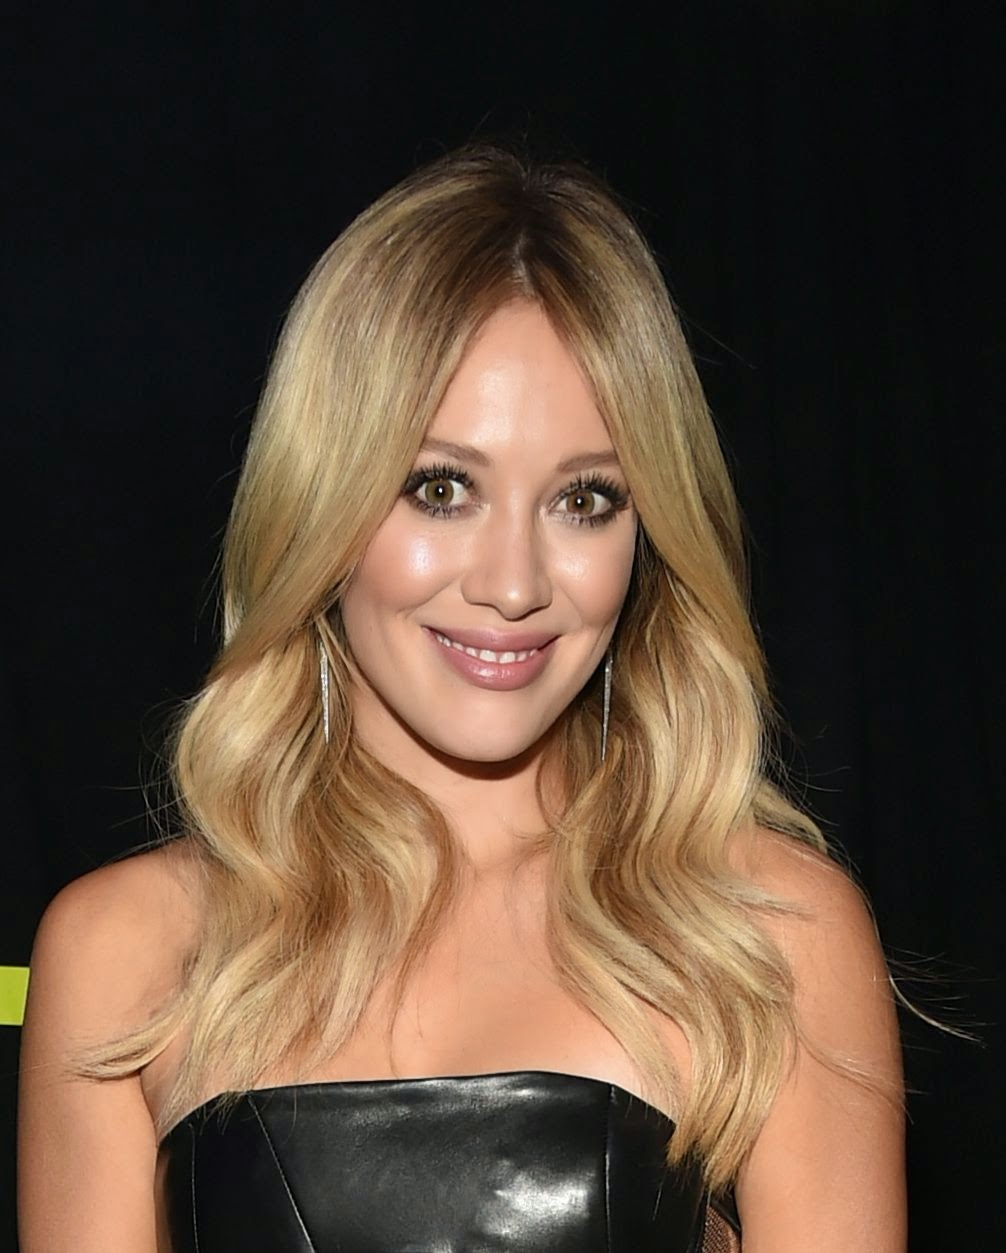 Hilary Duff HD Pictures | HD Wallpapers of Hilary Duff ... Hilary Duff